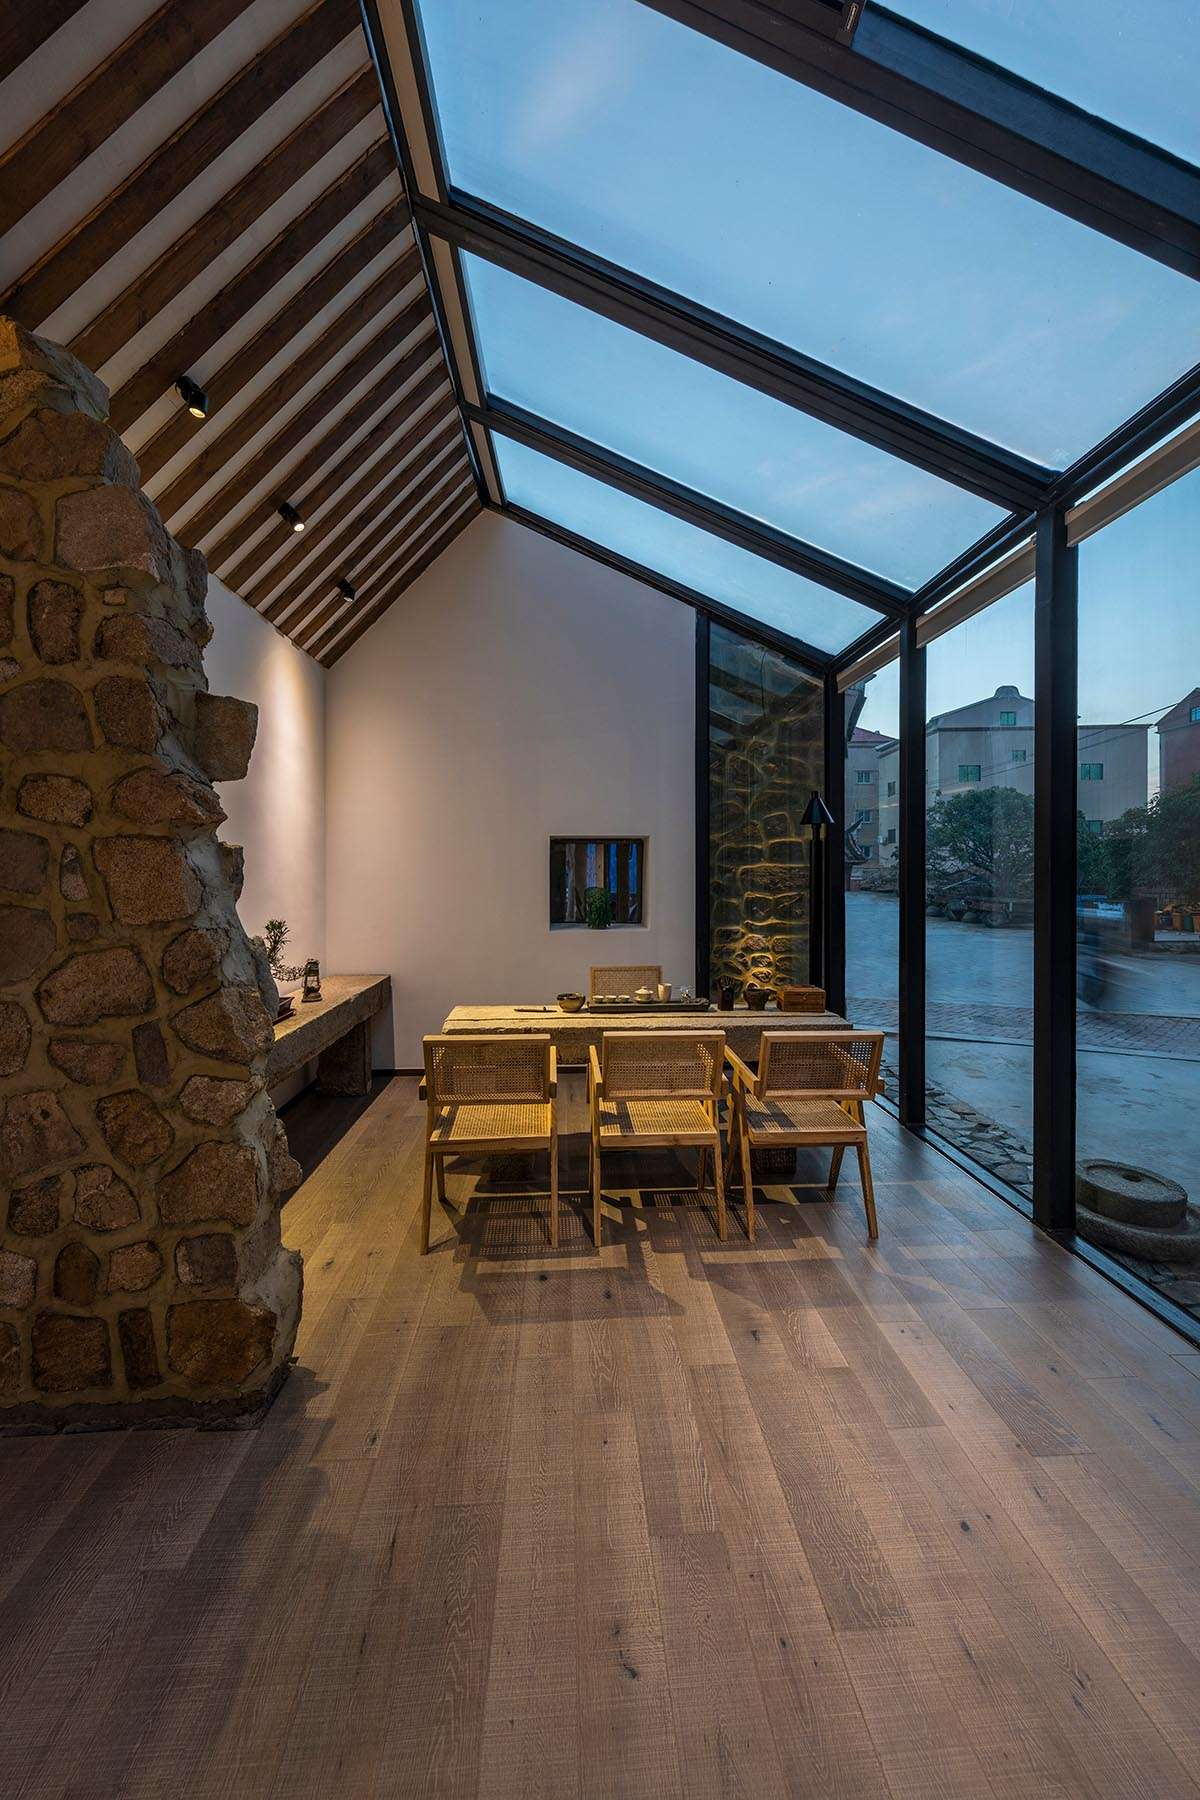 Revitalizing a traditional Chinese house using a glass facade